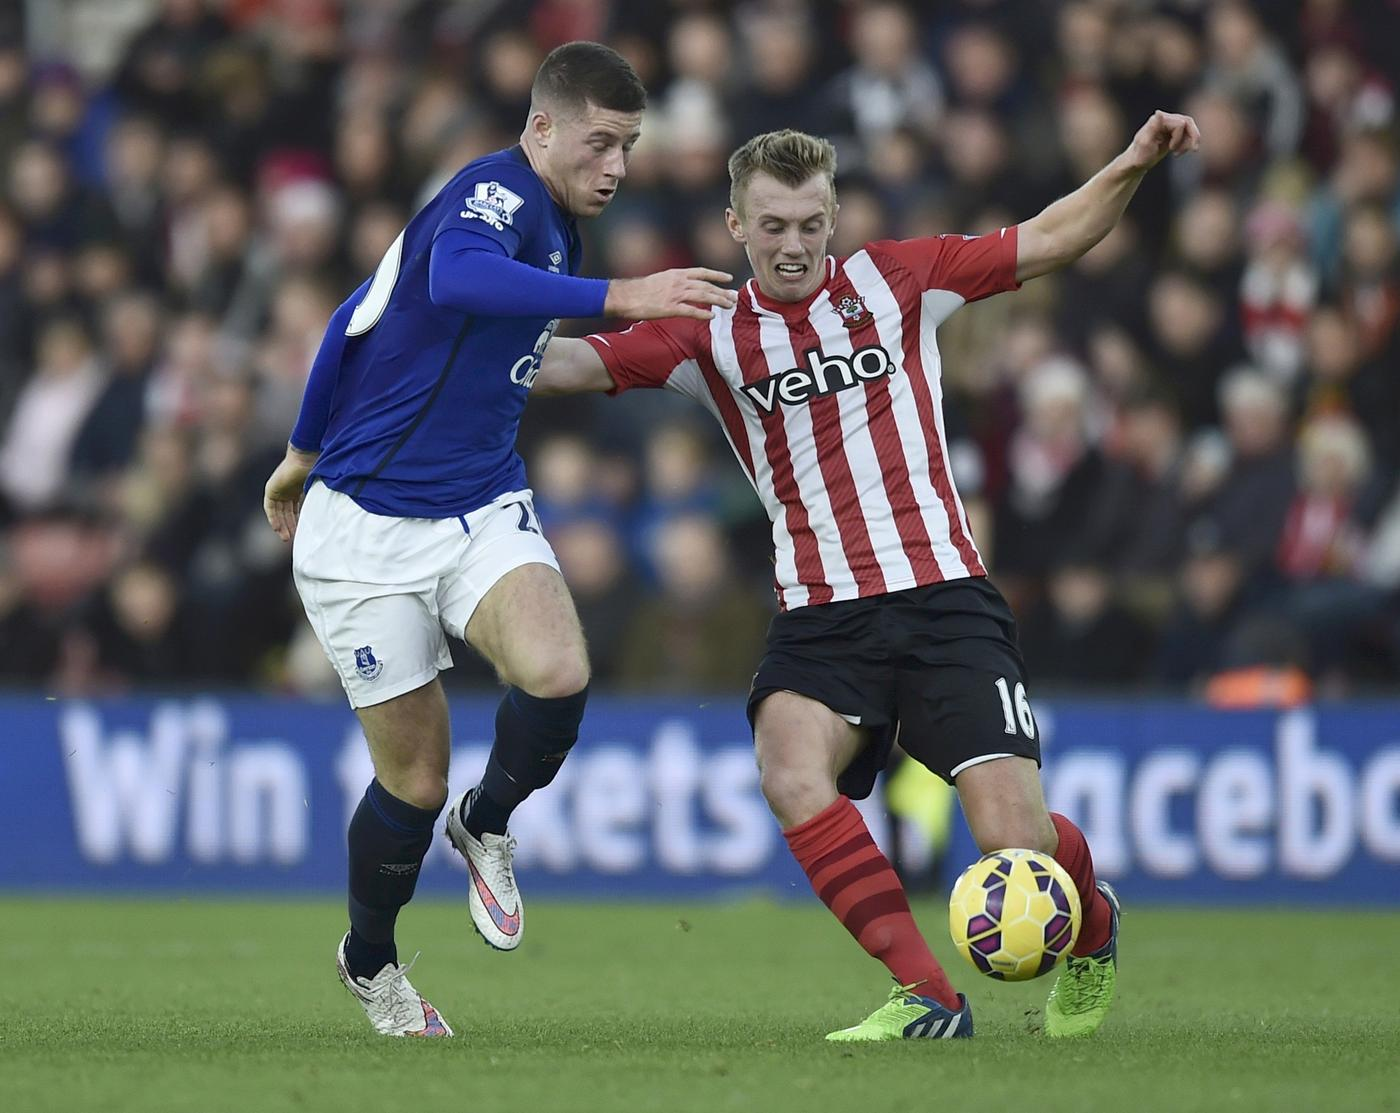 Southampton must end Goodison Hoodoo and march on to Europe